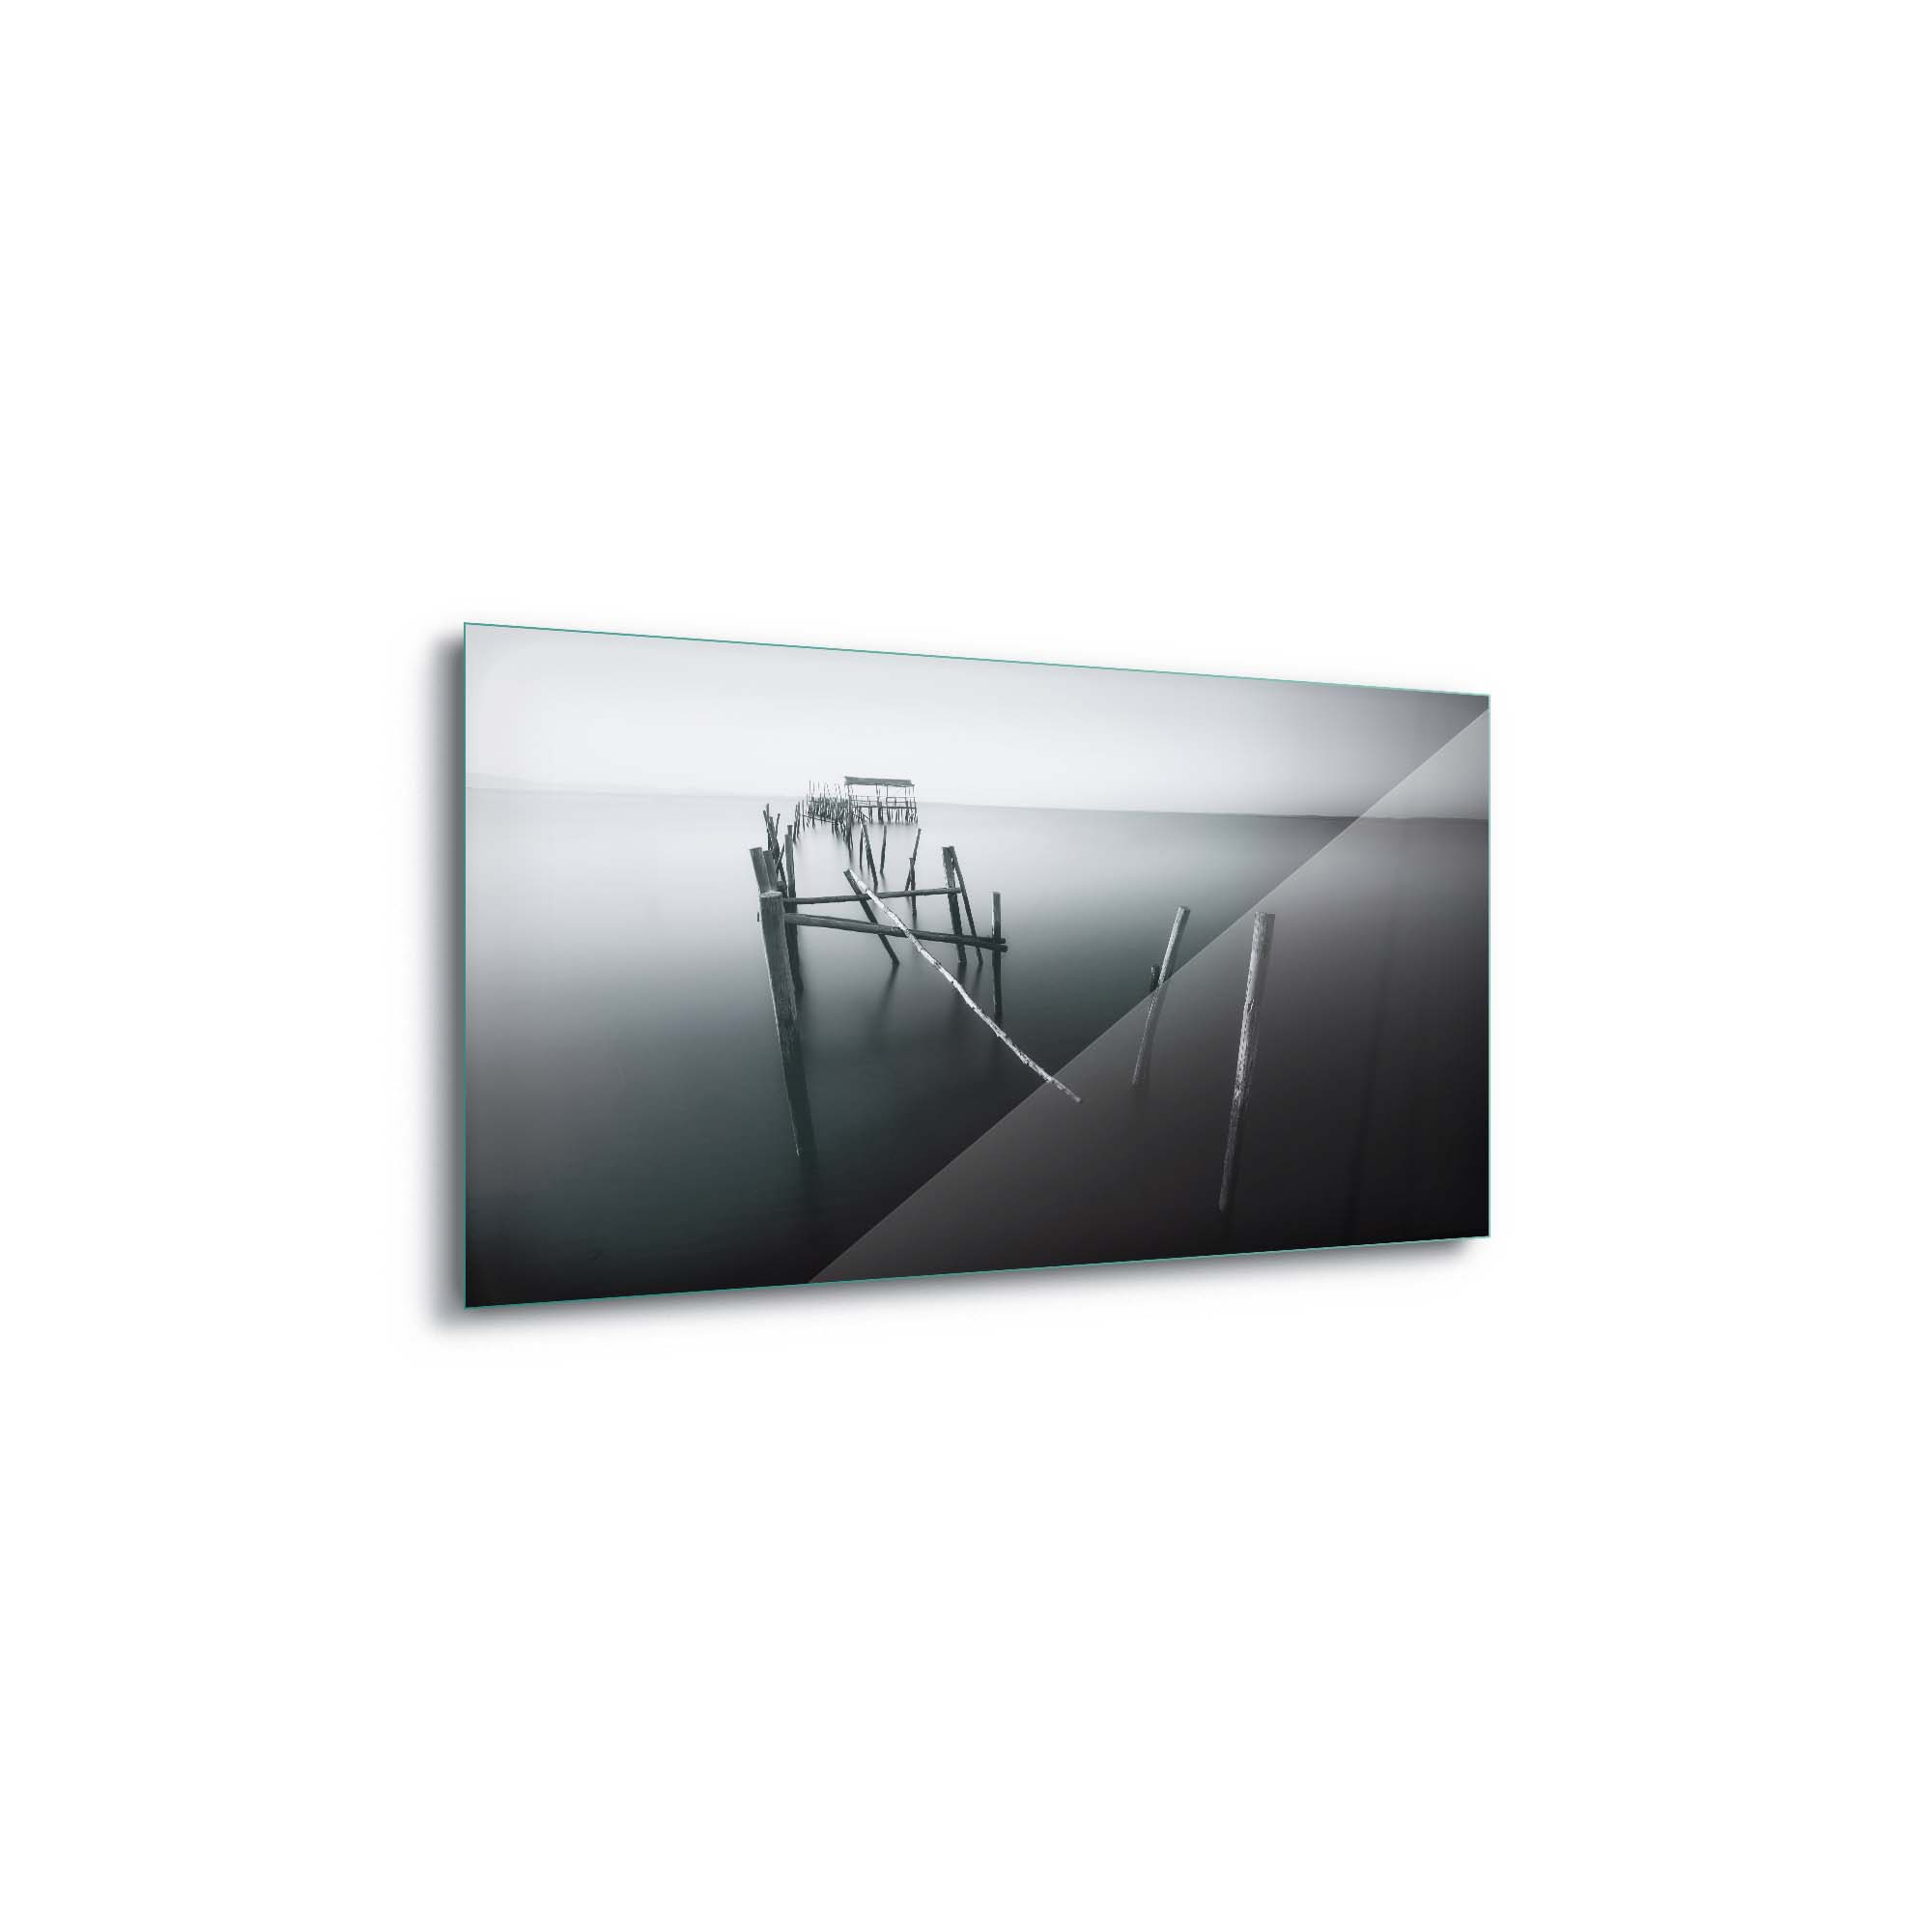 Glass printed Carrasqueira in Black and White